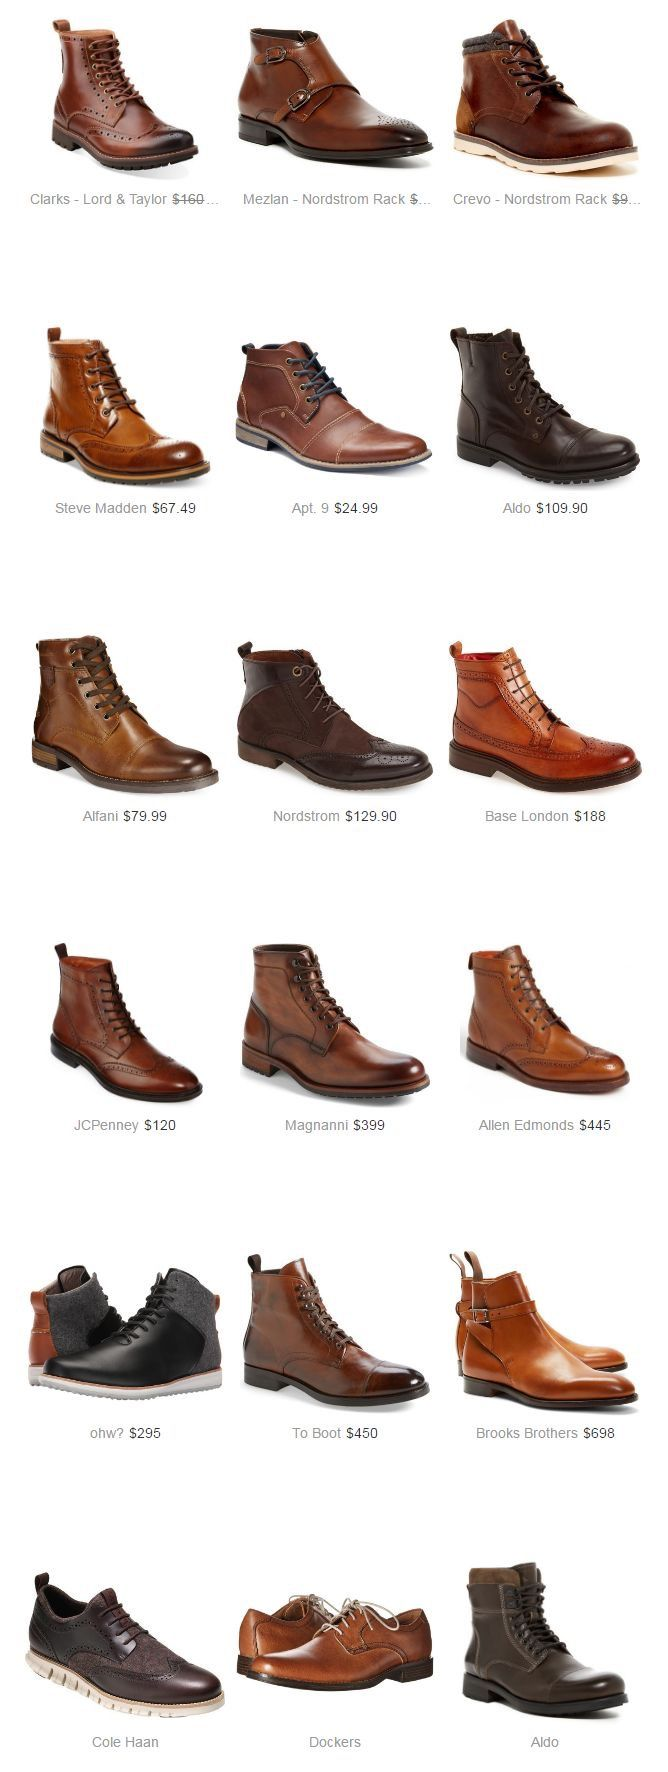 best affordable mens boots